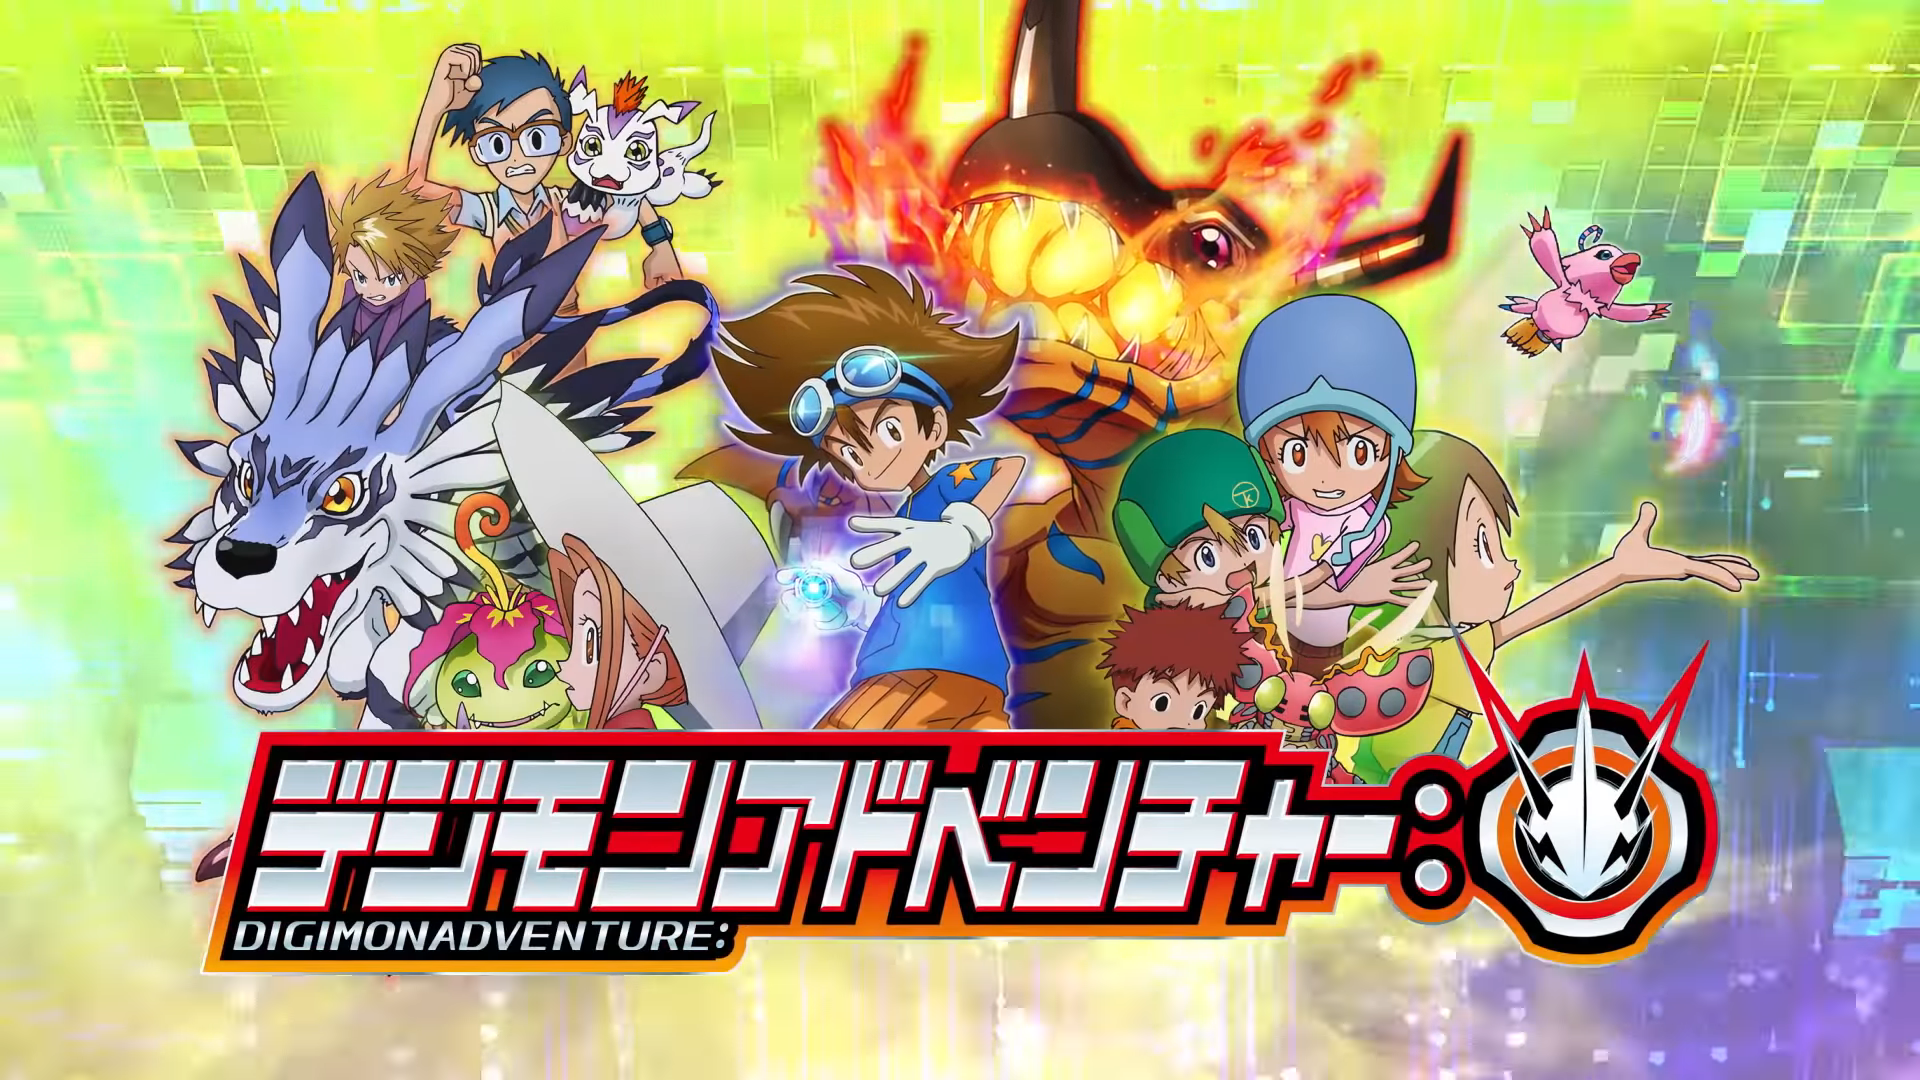 Photo of Sinopsis de los episodios 36 a 39 de Digimon Adventure: